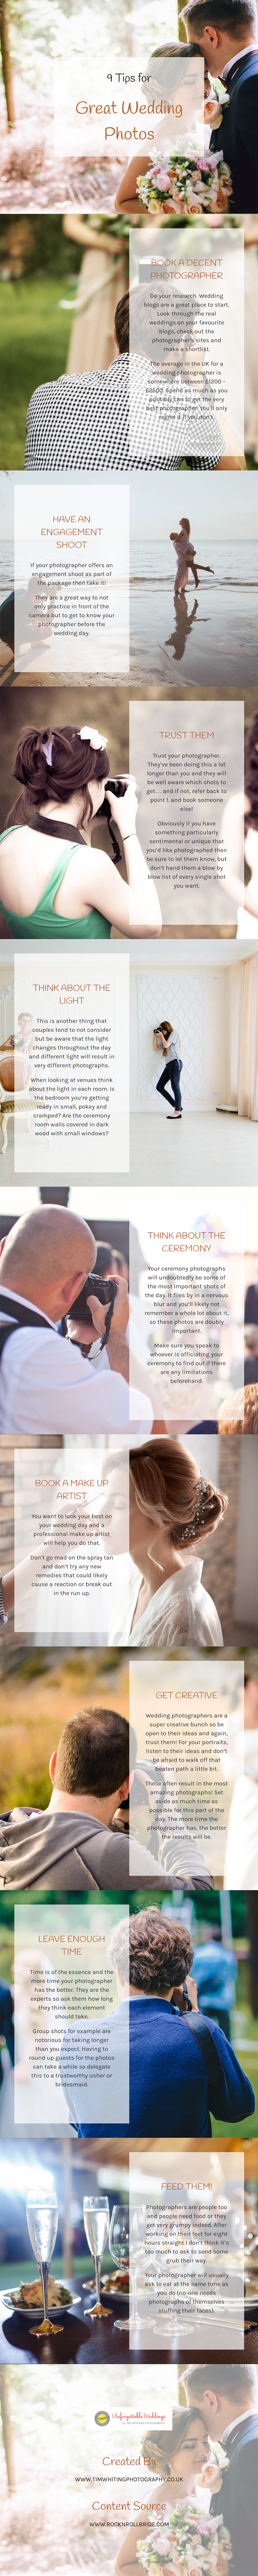 10 Tips for Great Wedding Photos.jpg